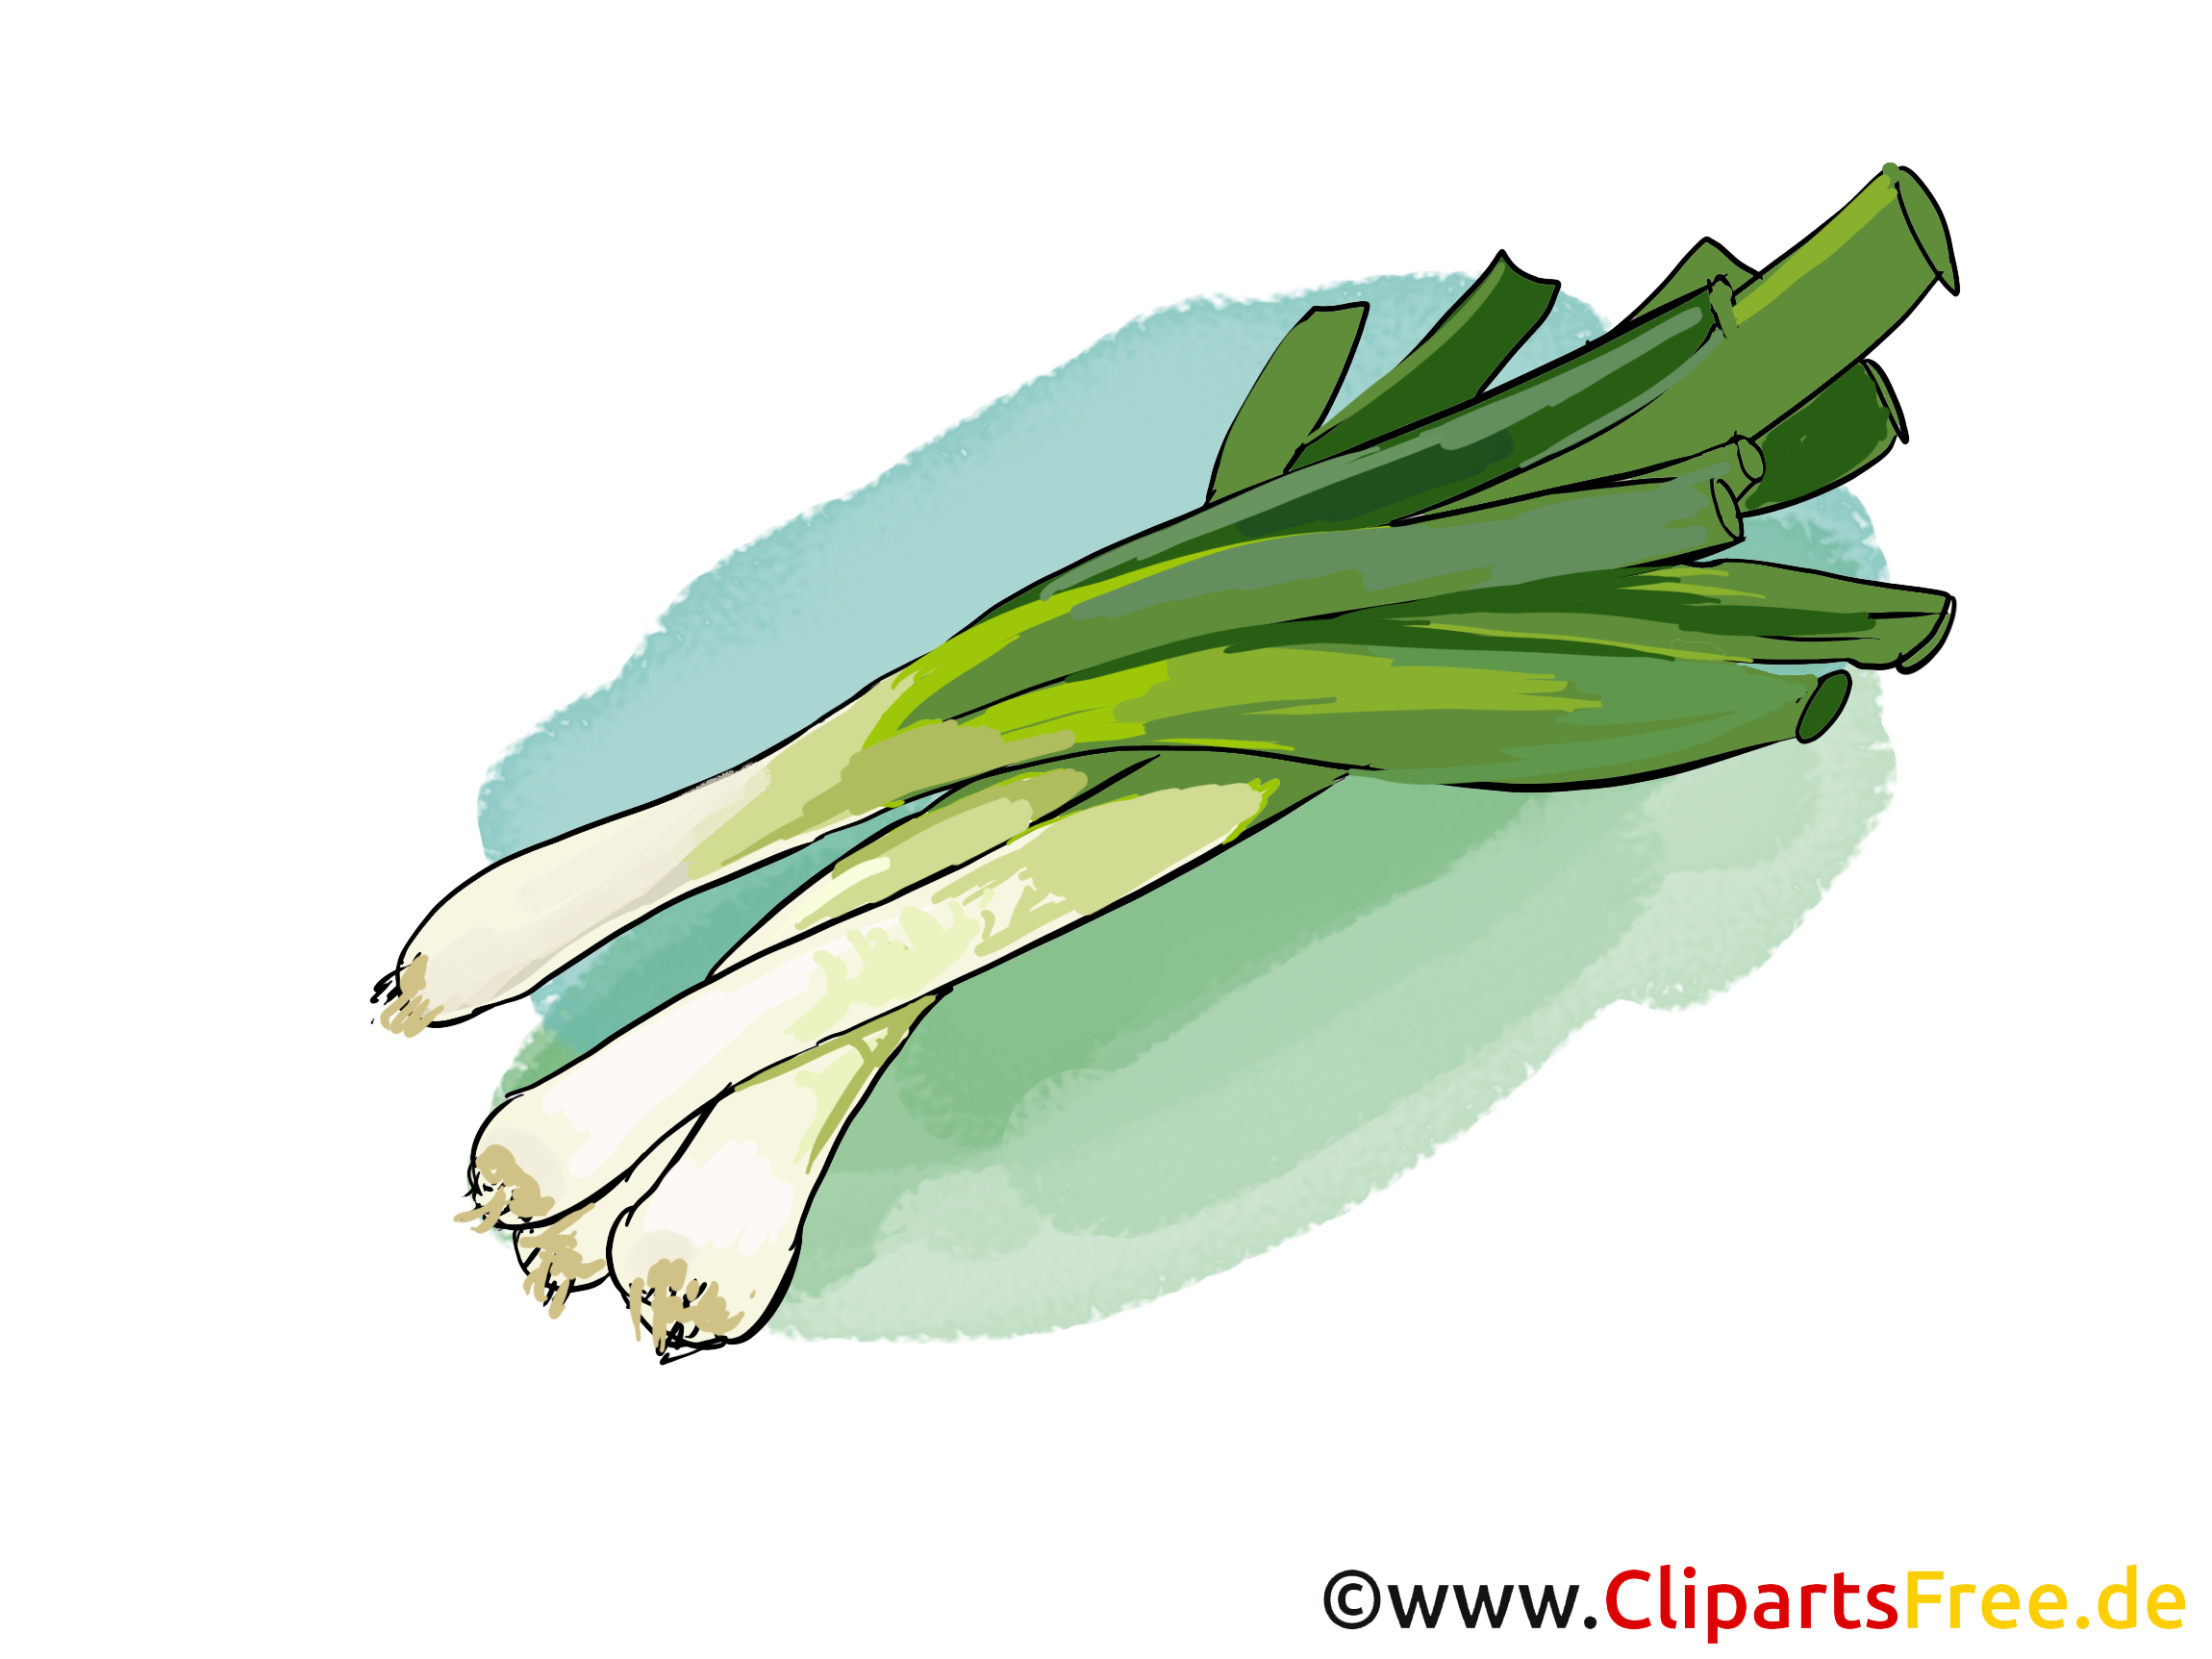 Poireau Image  C3 A0 T C3 A9l C3 A9charger L C3 A9gume Clipart 5538 on tele cartoon